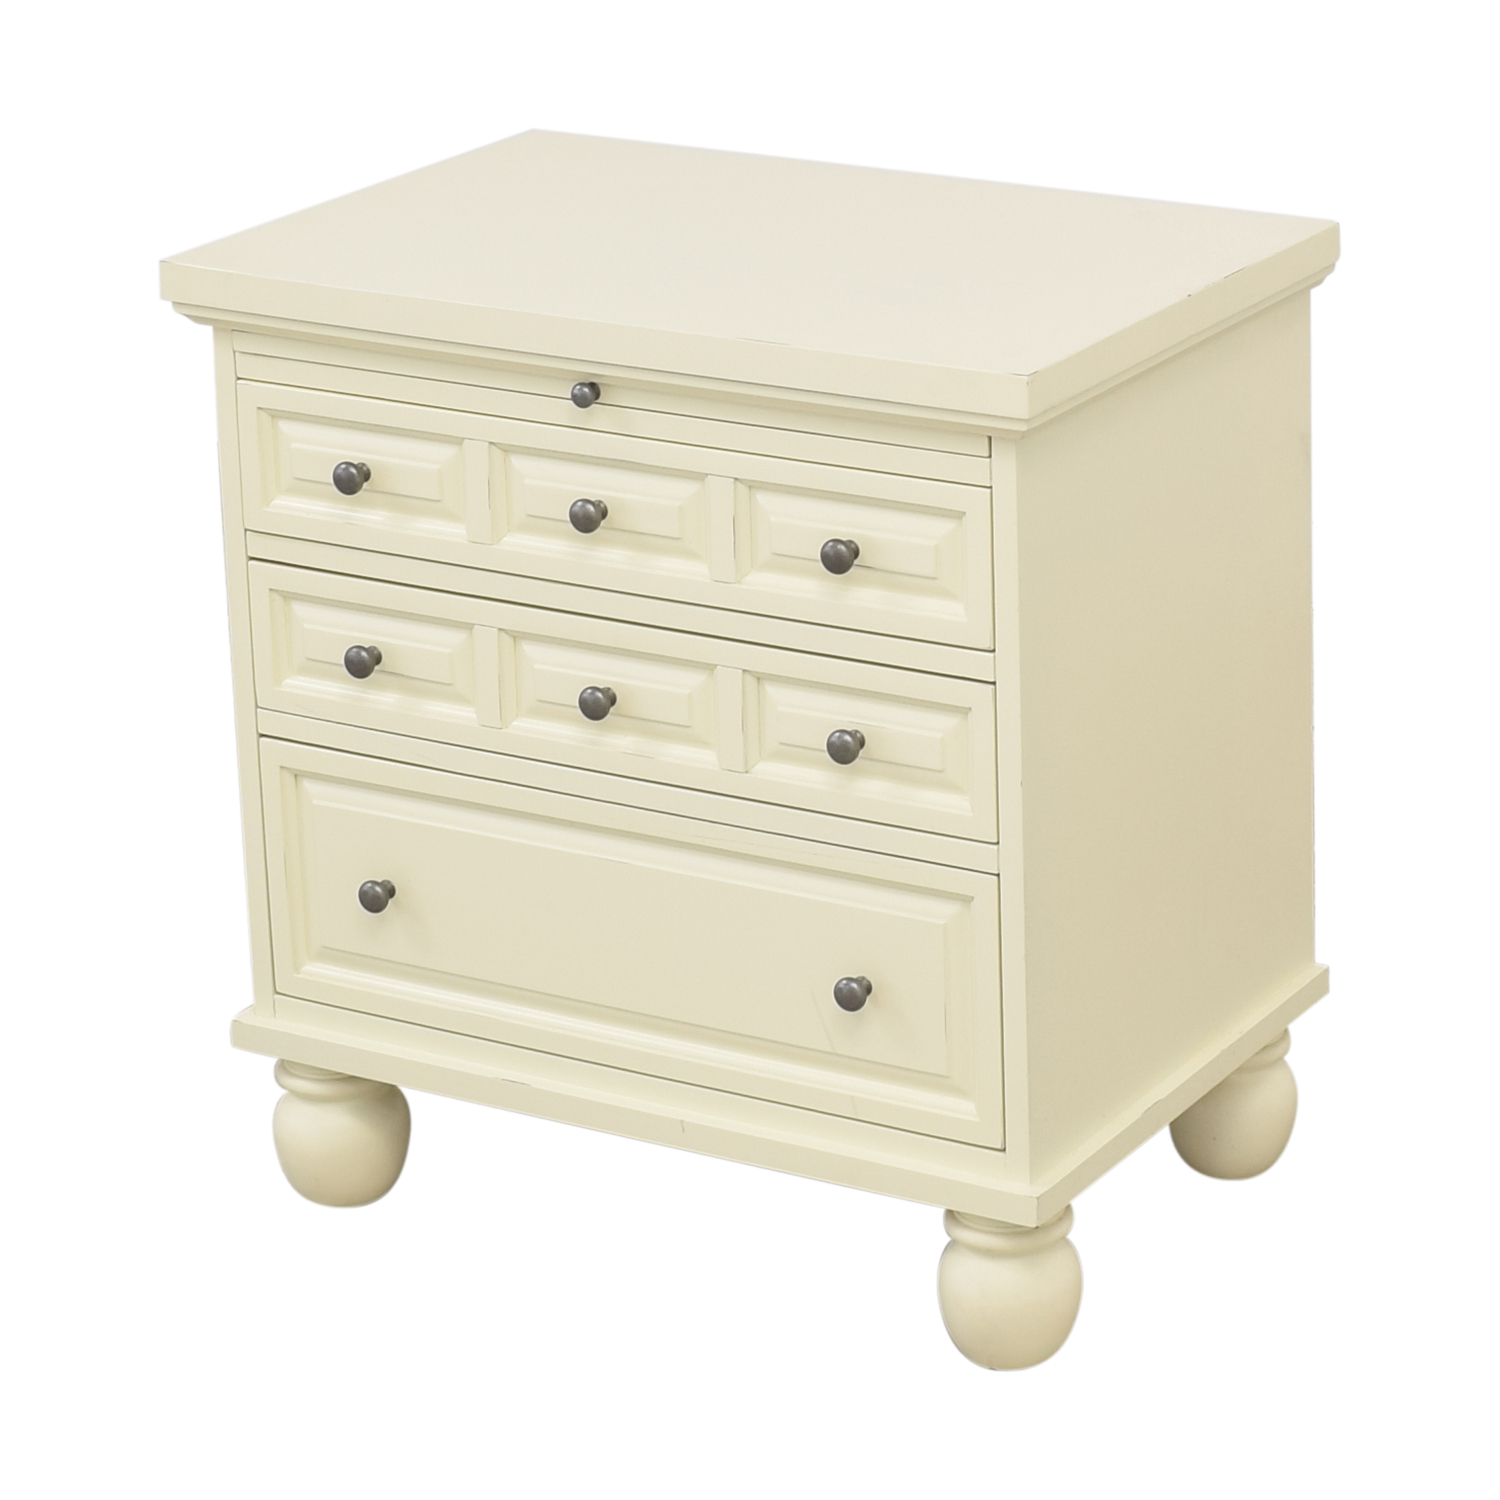 buy Pier 1 Pier 1 Ashworth Bedside Chest online